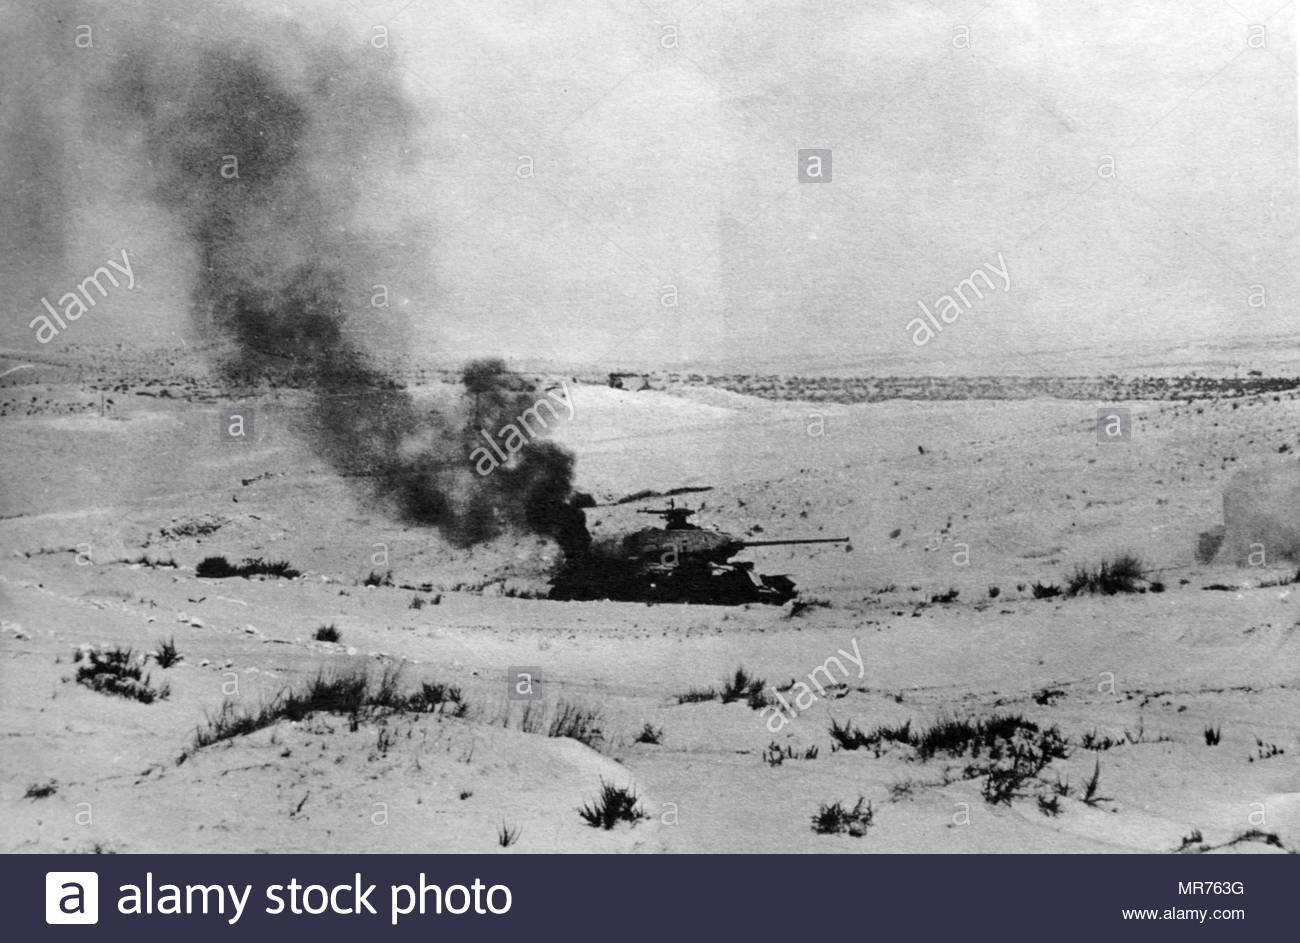 Israeli Egyptian army tank destroyed in action in the Sinai Peninsula during the Six Day War 1967 - Stock Image